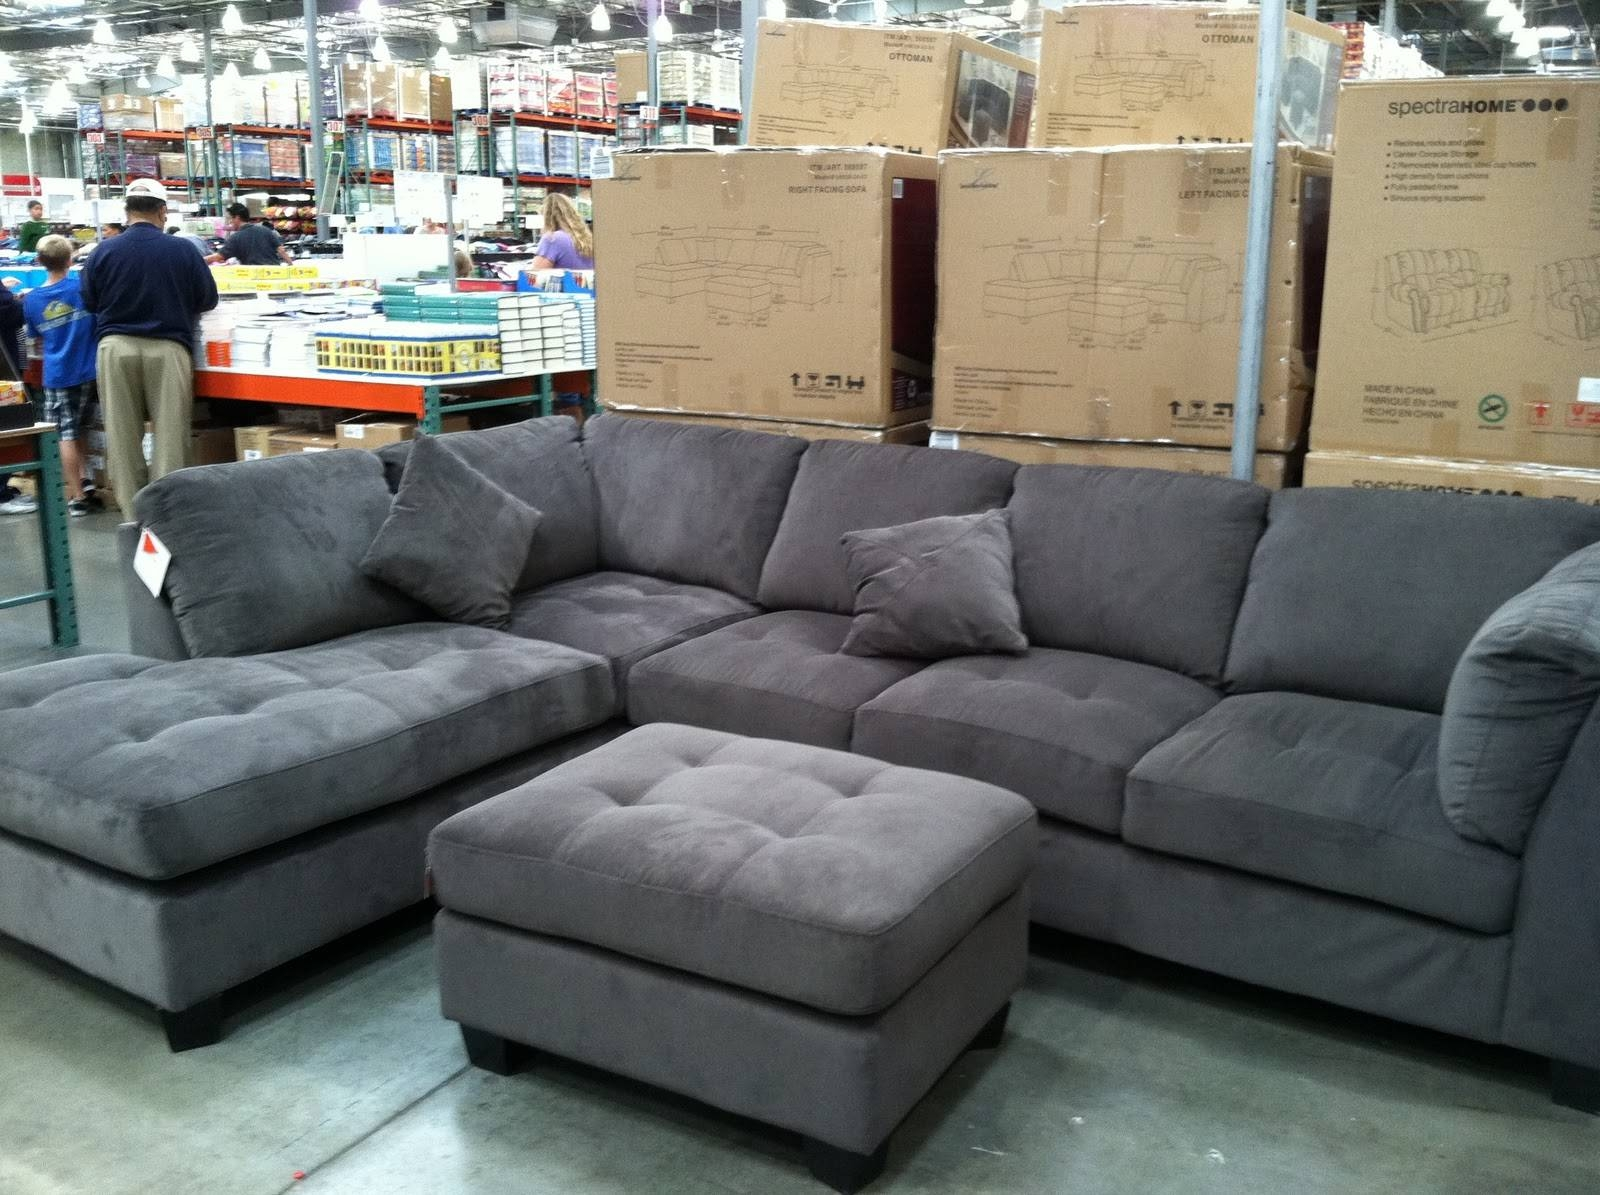 Amusing Multi Piece Sectional Sofa 95 On 6 Piece Modular Sectional in 6 Piece Sectional Sofas Couches (Image 4 of 15)